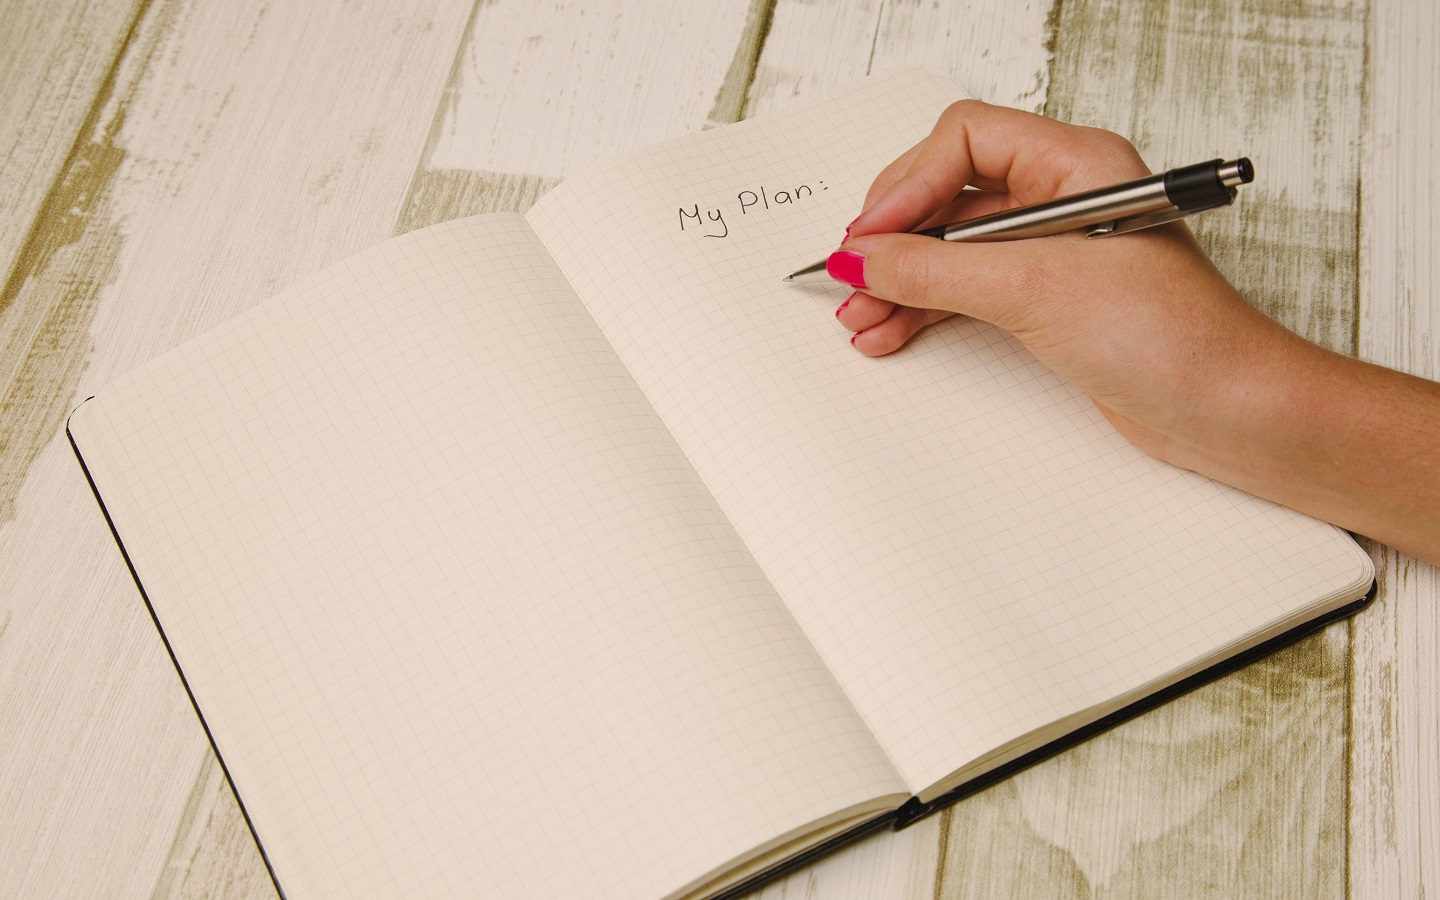 a hand writing on a diary